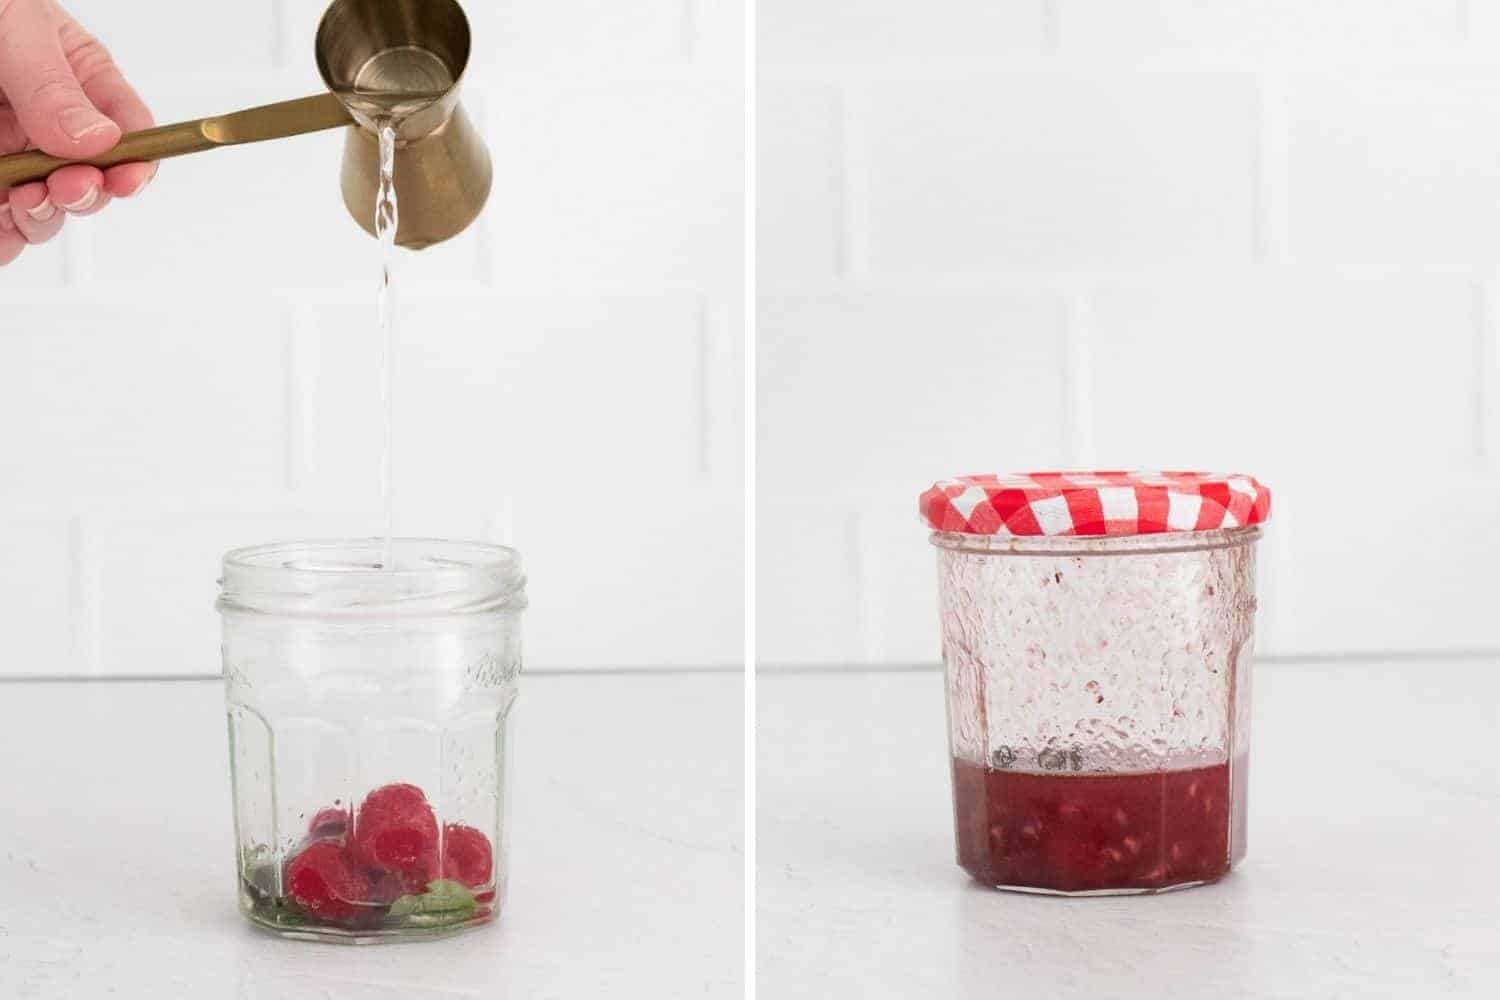 Two images, syrup being poured into a jar with raspberries, and then smashed raspberries in a jar.